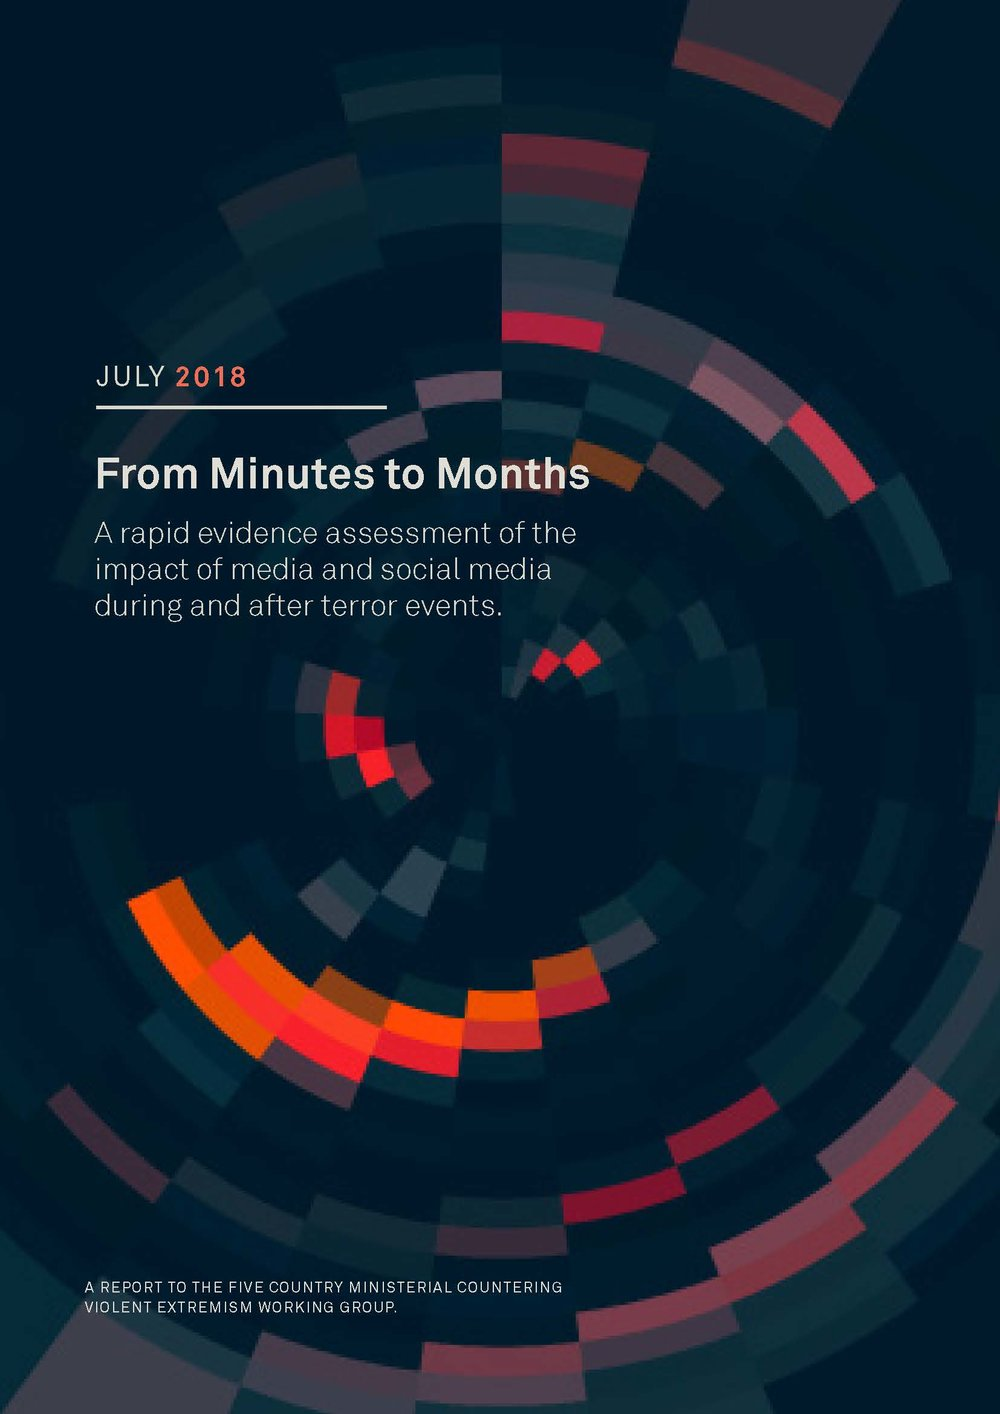 From Minutes to Months: A rapid evidence assessment of the impact of media and social media during and after terror events